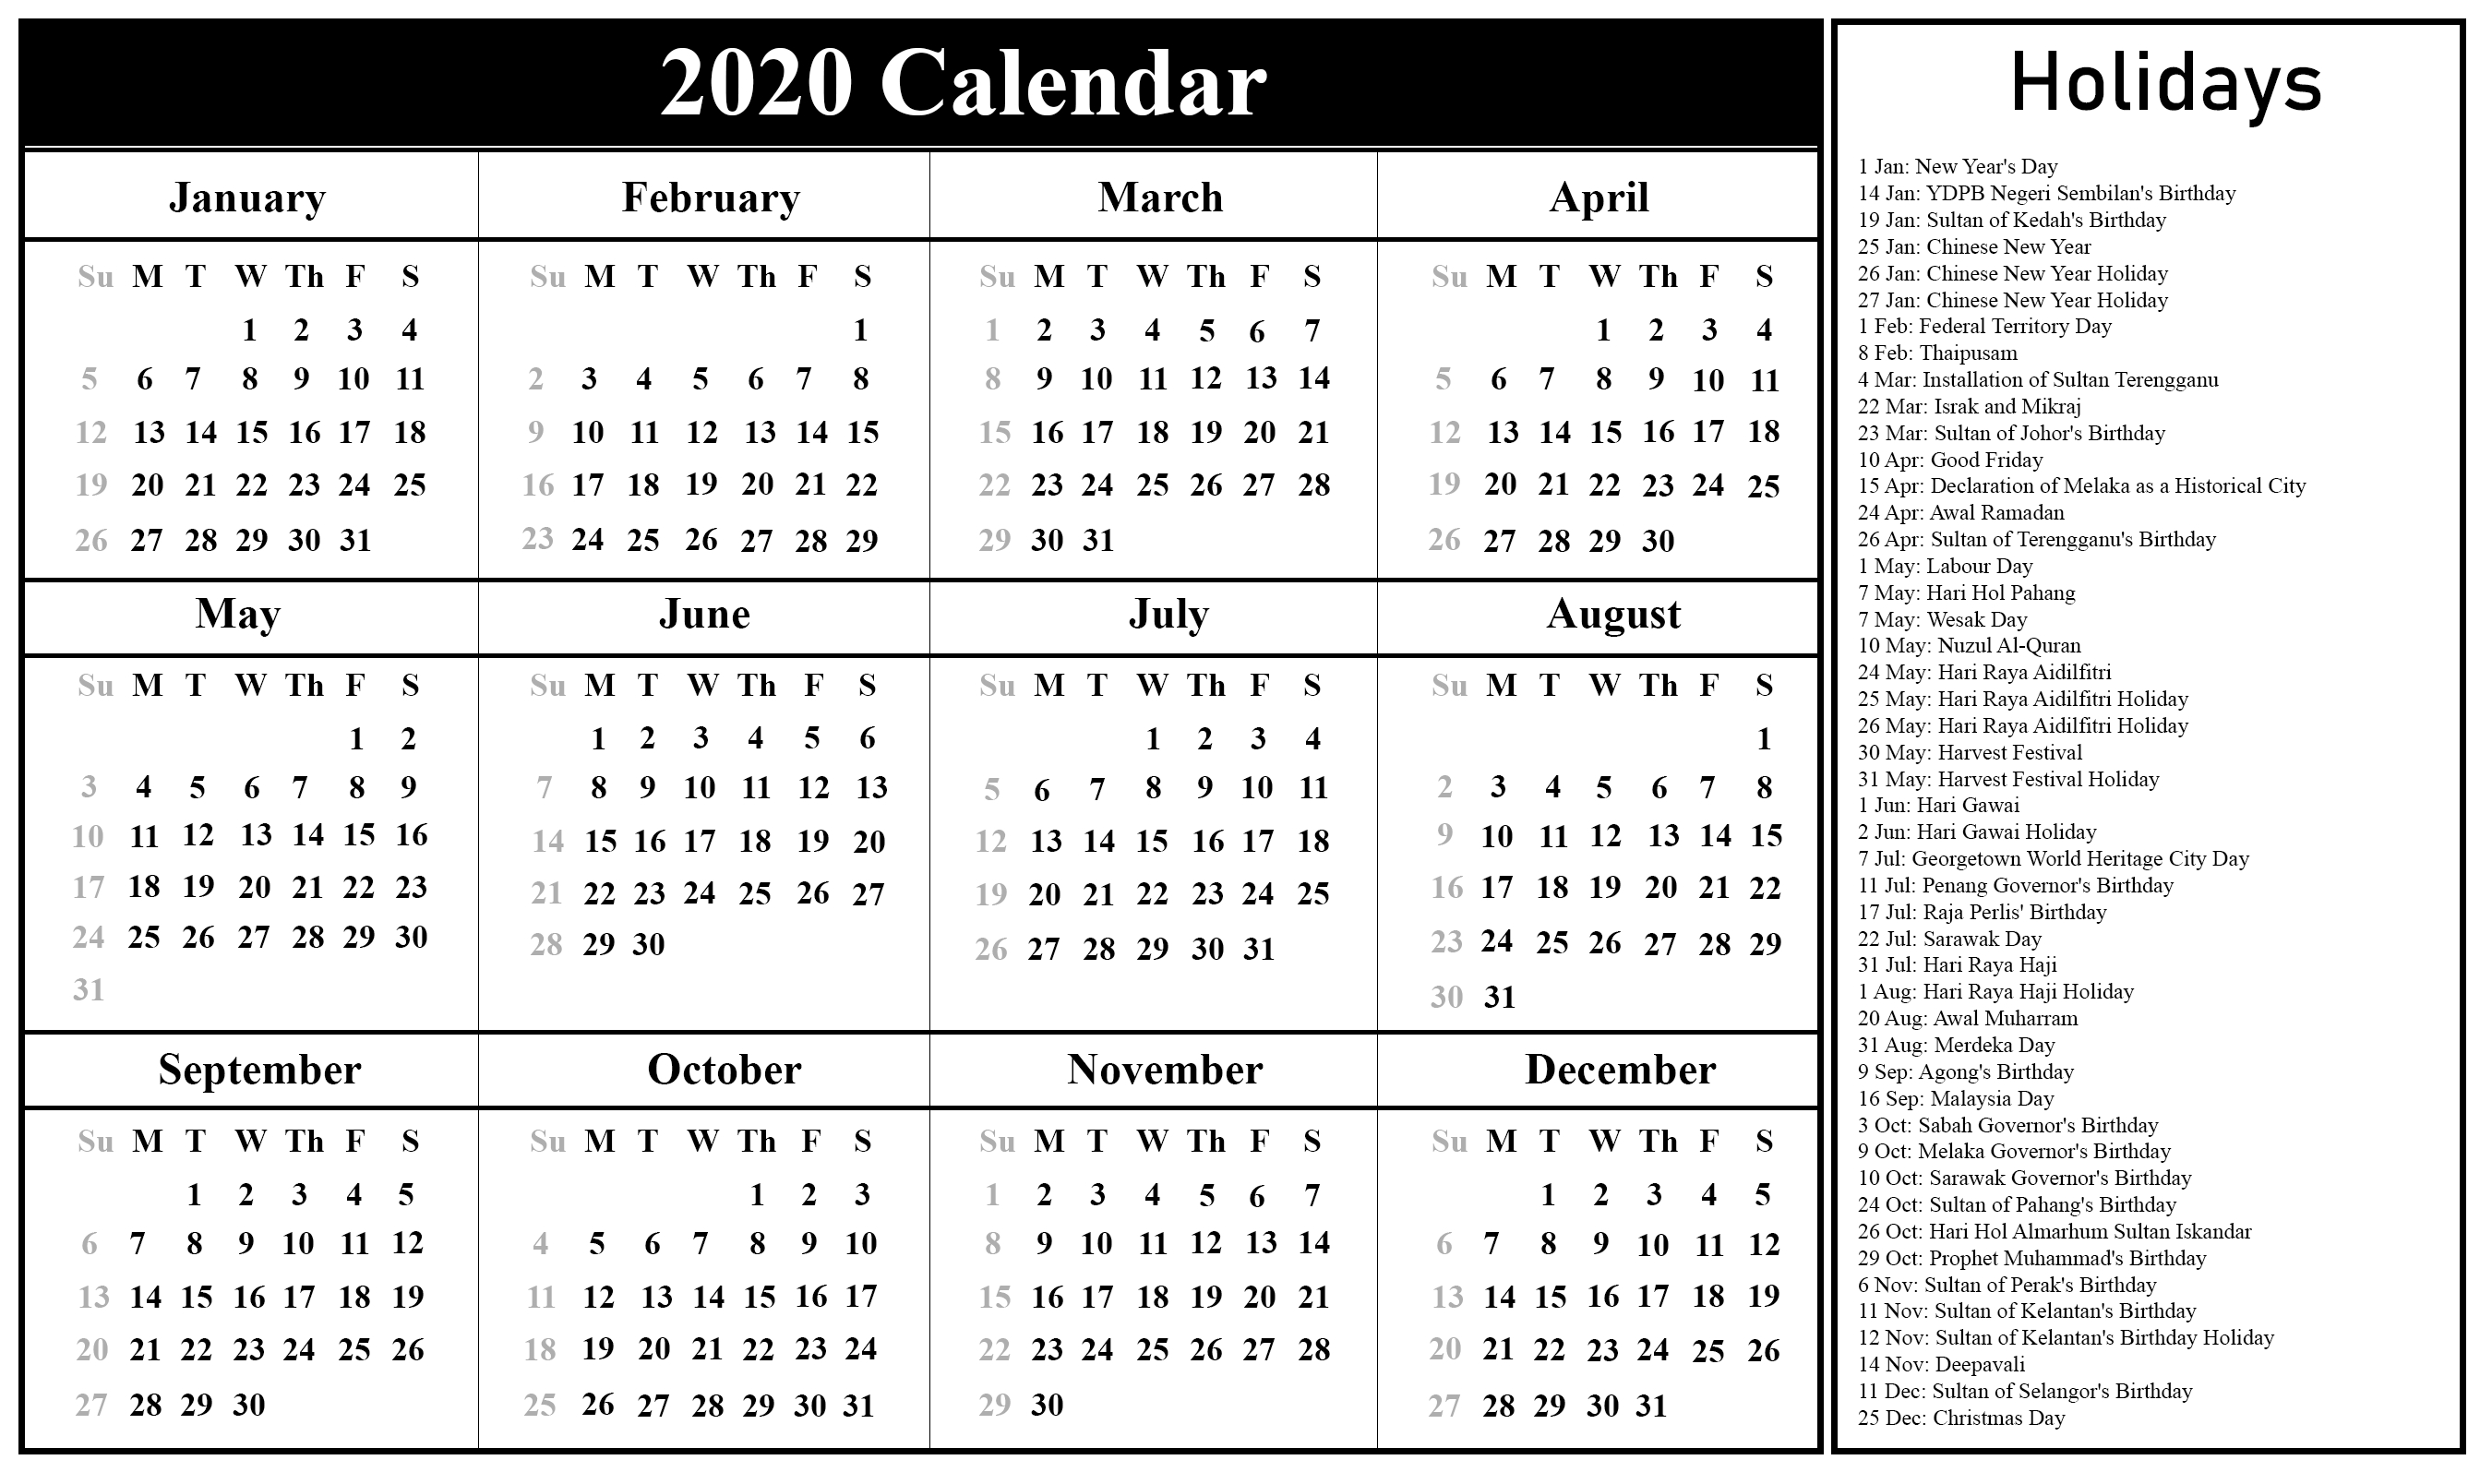 Free Printable Malaysia Calendar 2020 In Pdf, Excel & Word-2020 Calendar Of National Holidays Printable